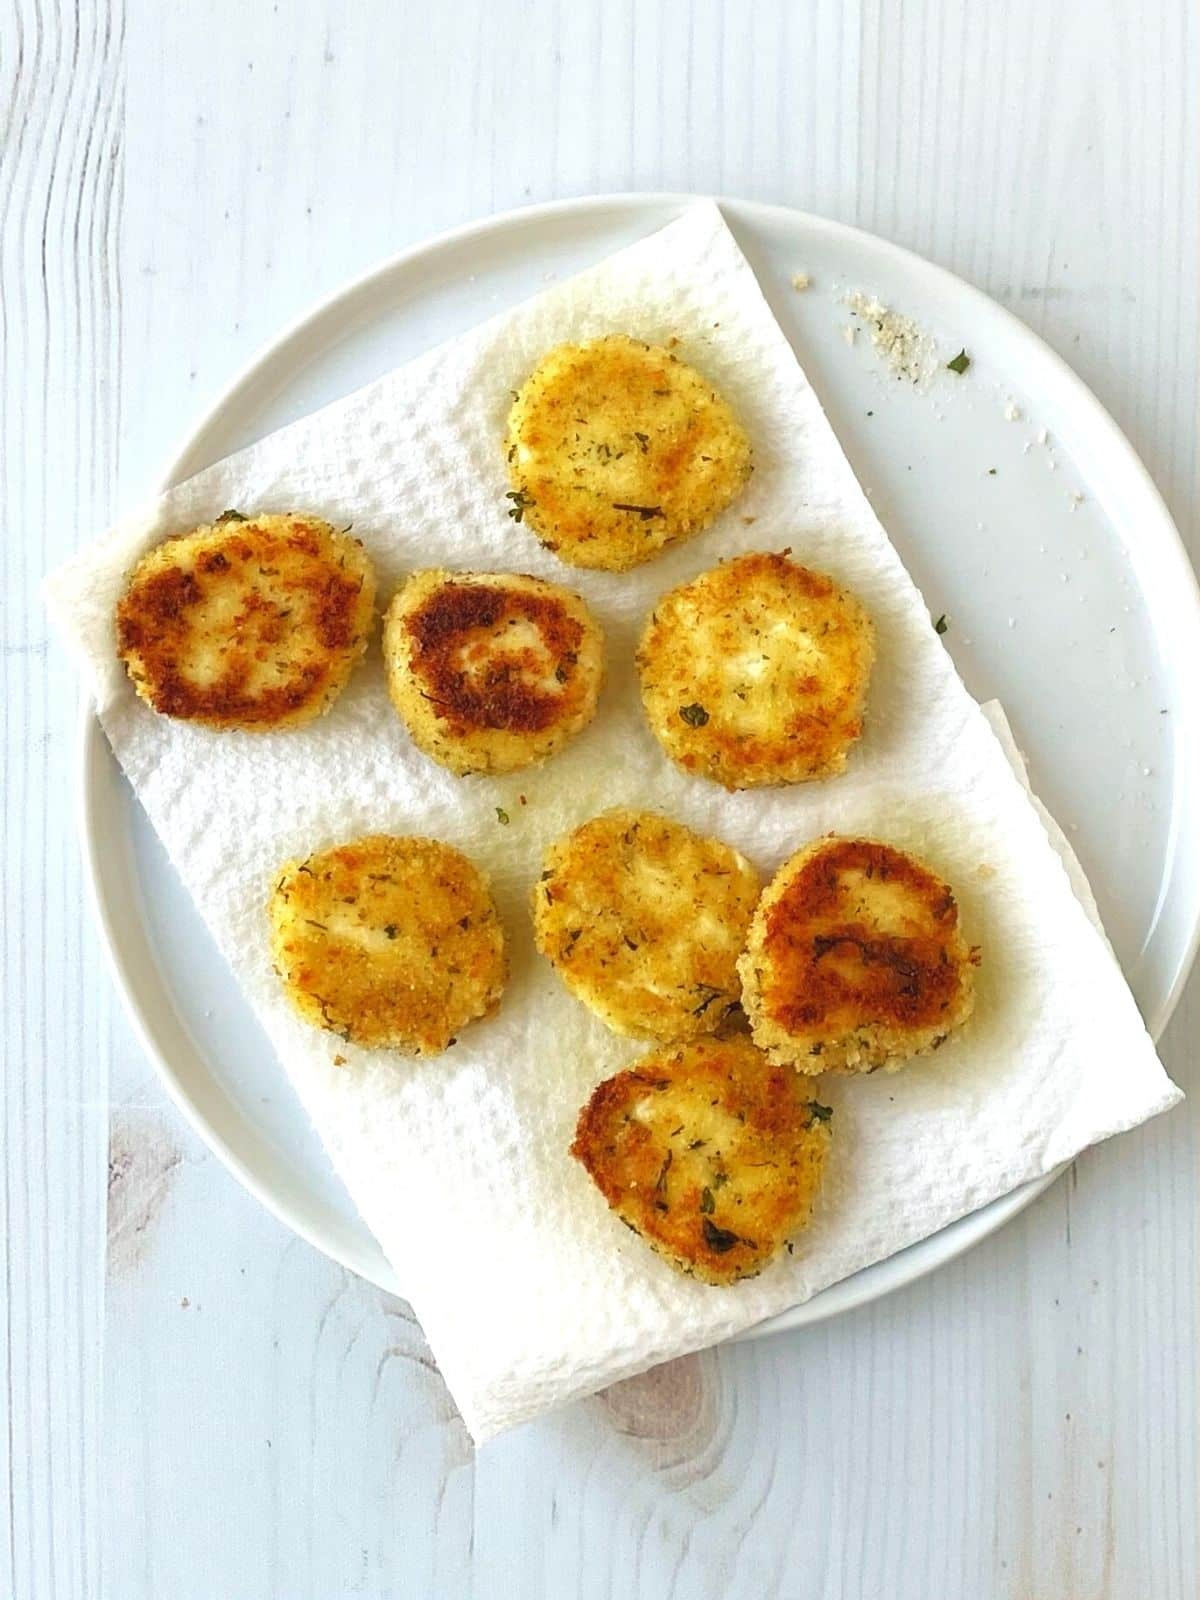 fried goat cheese on a paper towel-lined plate